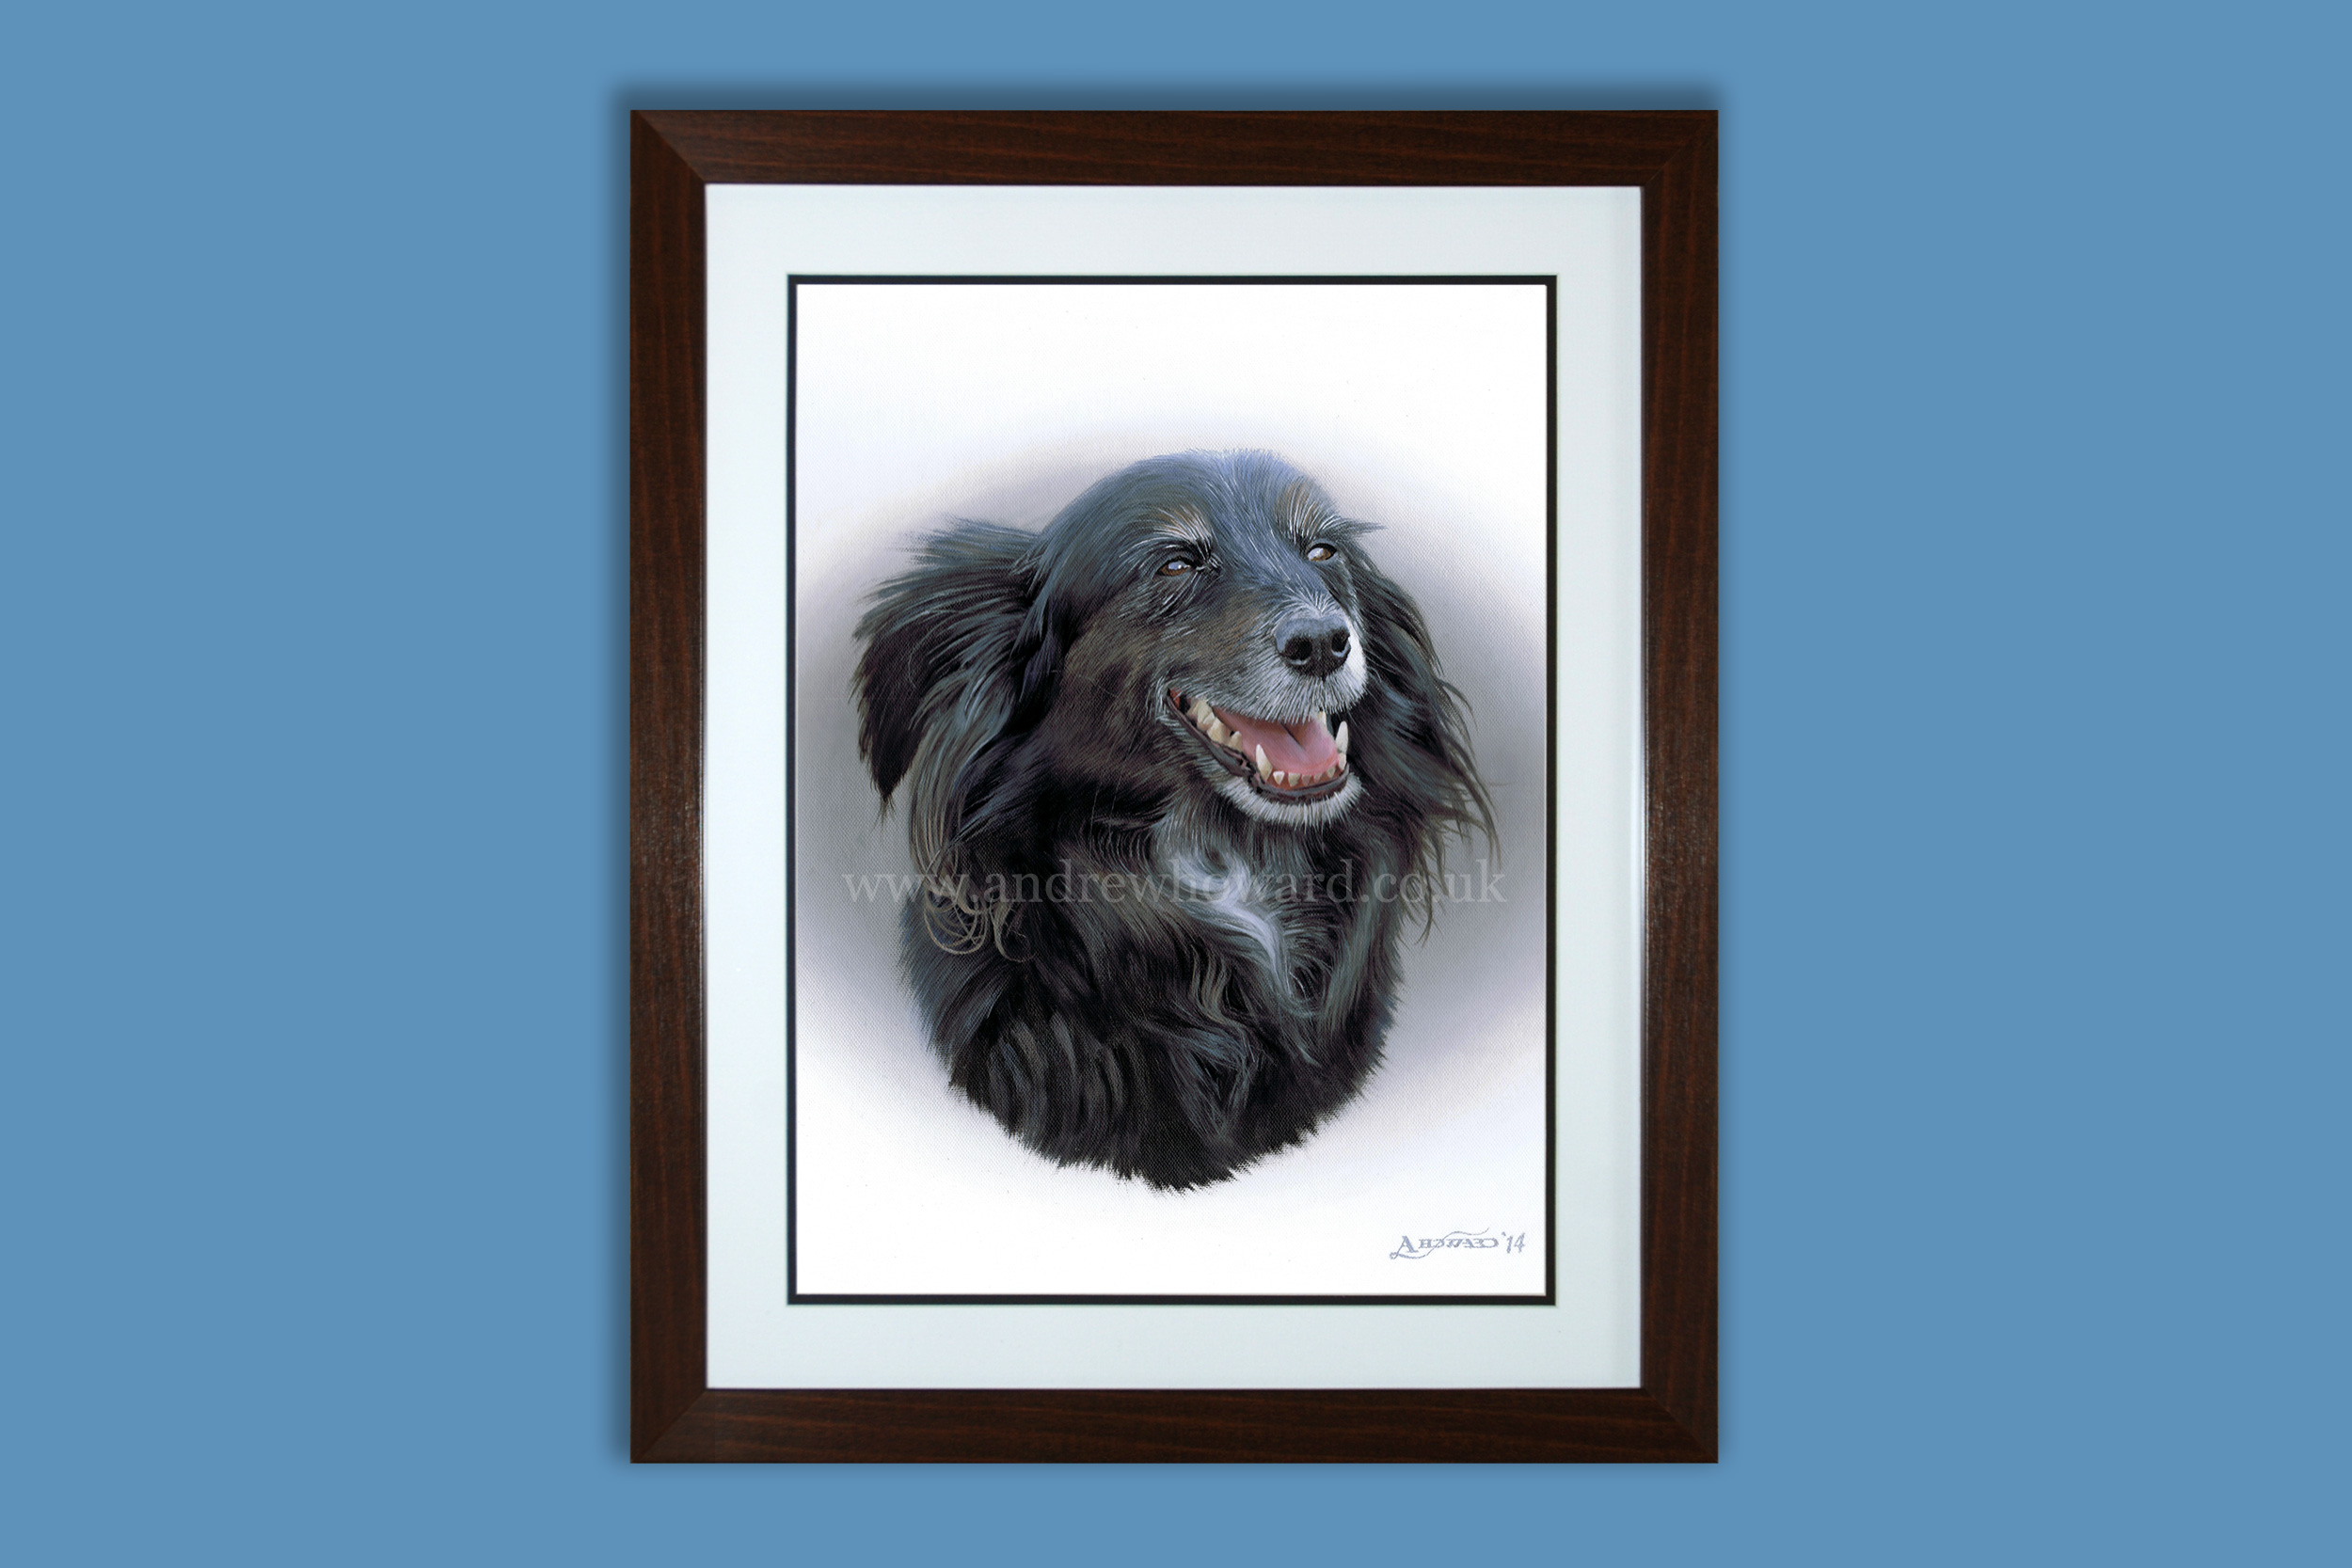 Andrew Howard Art - Border collie dog oil painting